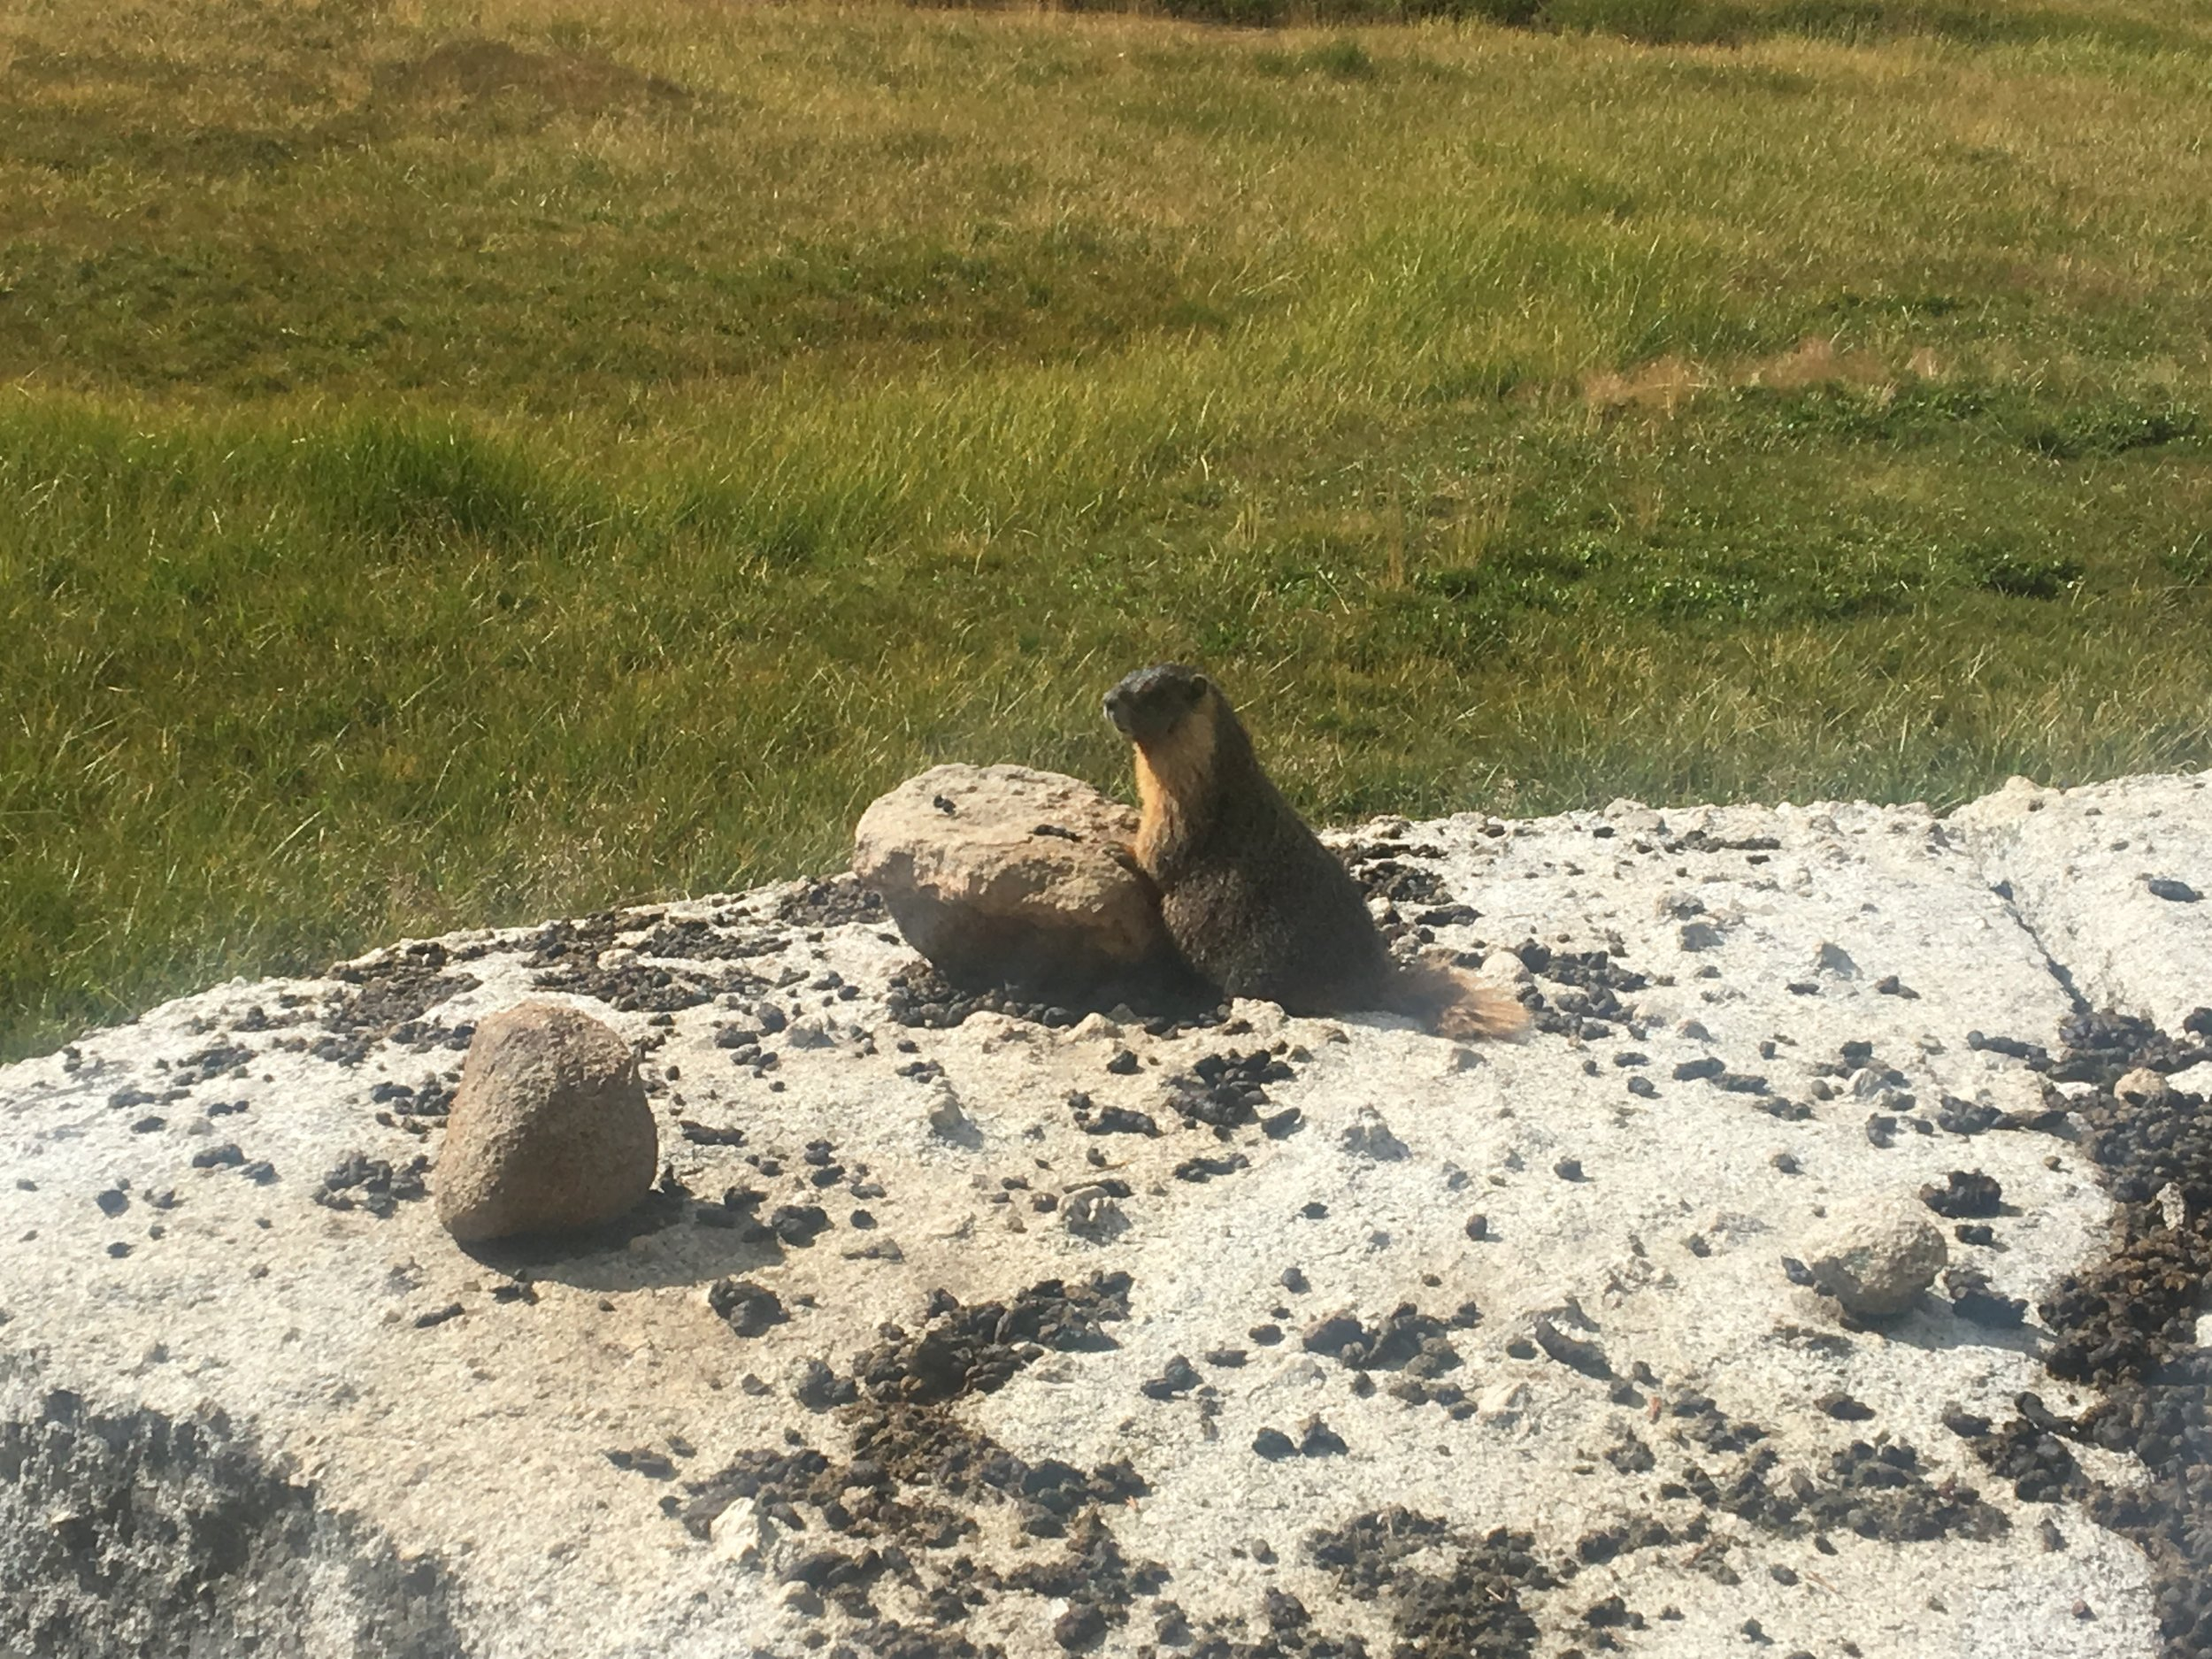 The view from our campsite and one of our marmot friends!